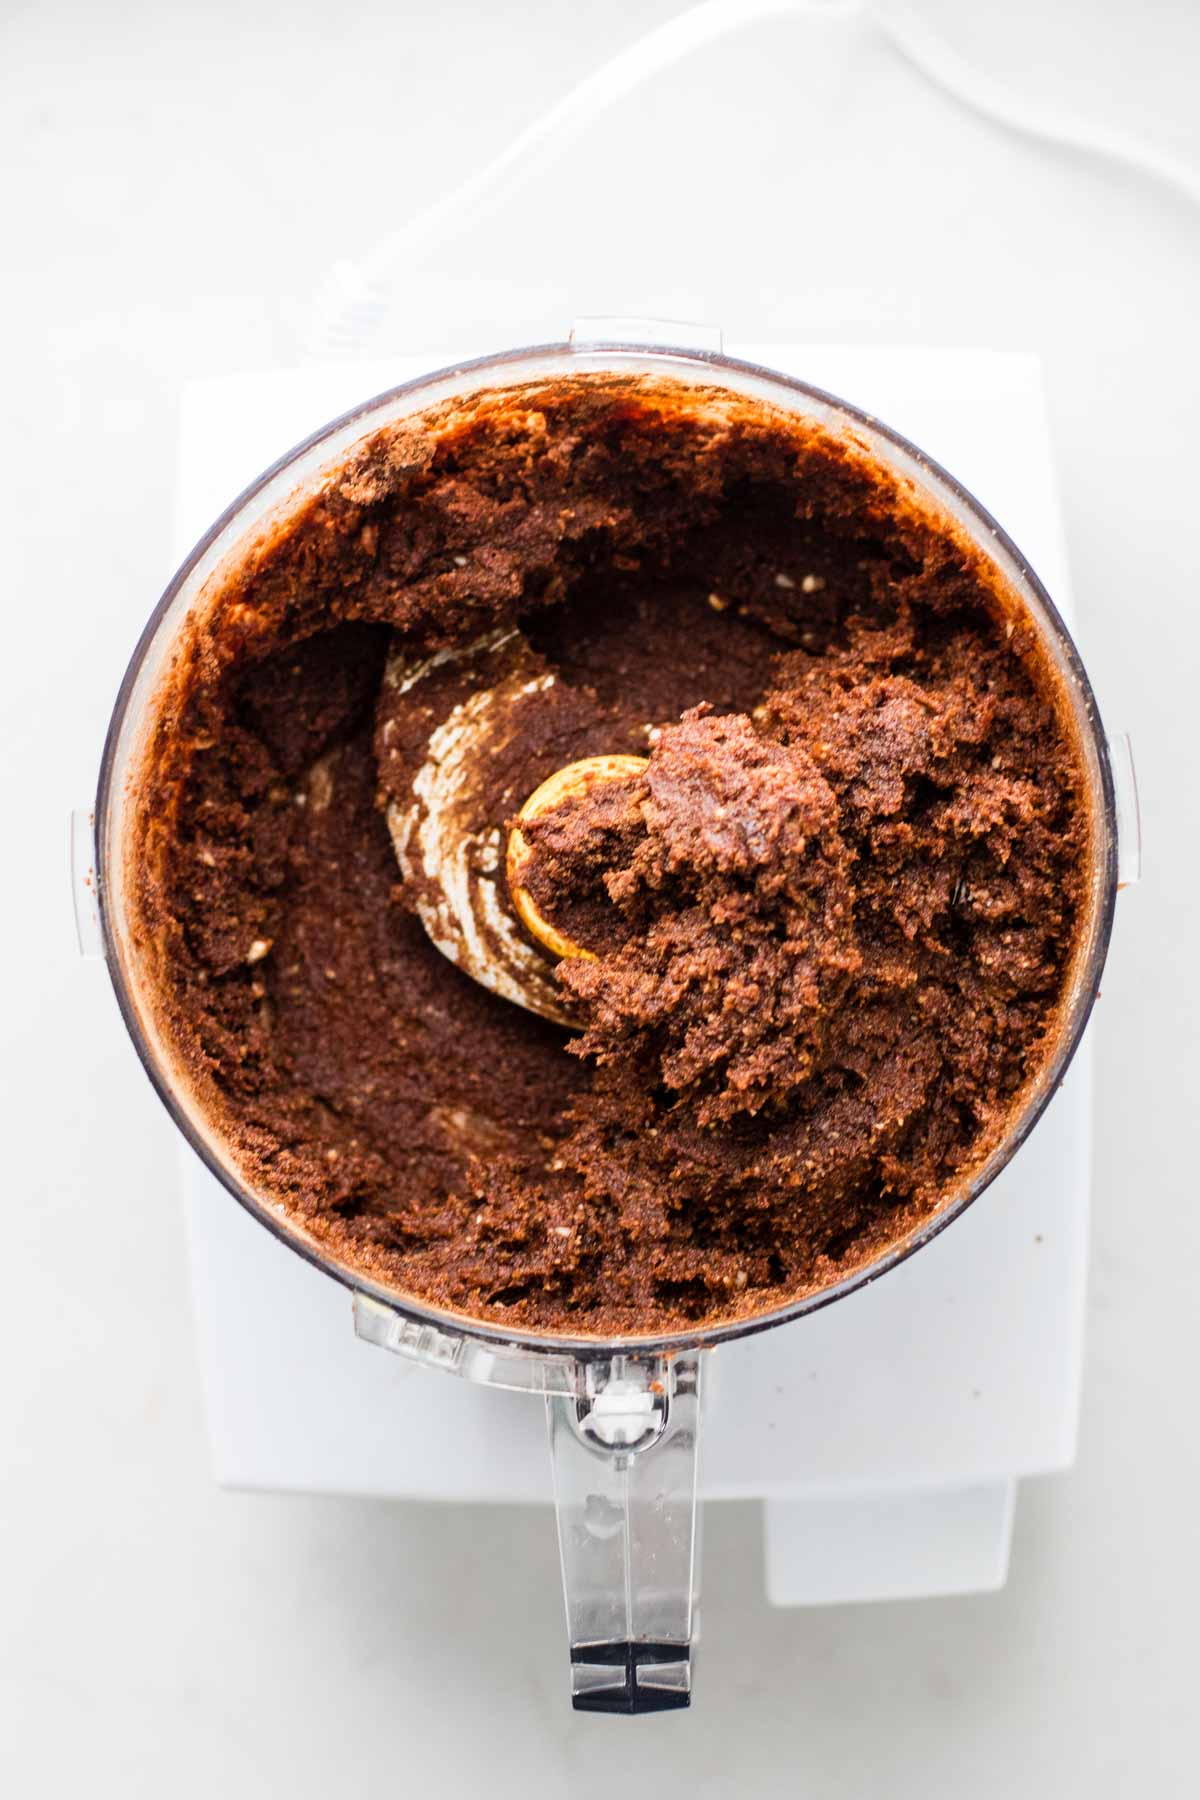 Chocolate in a food processor.